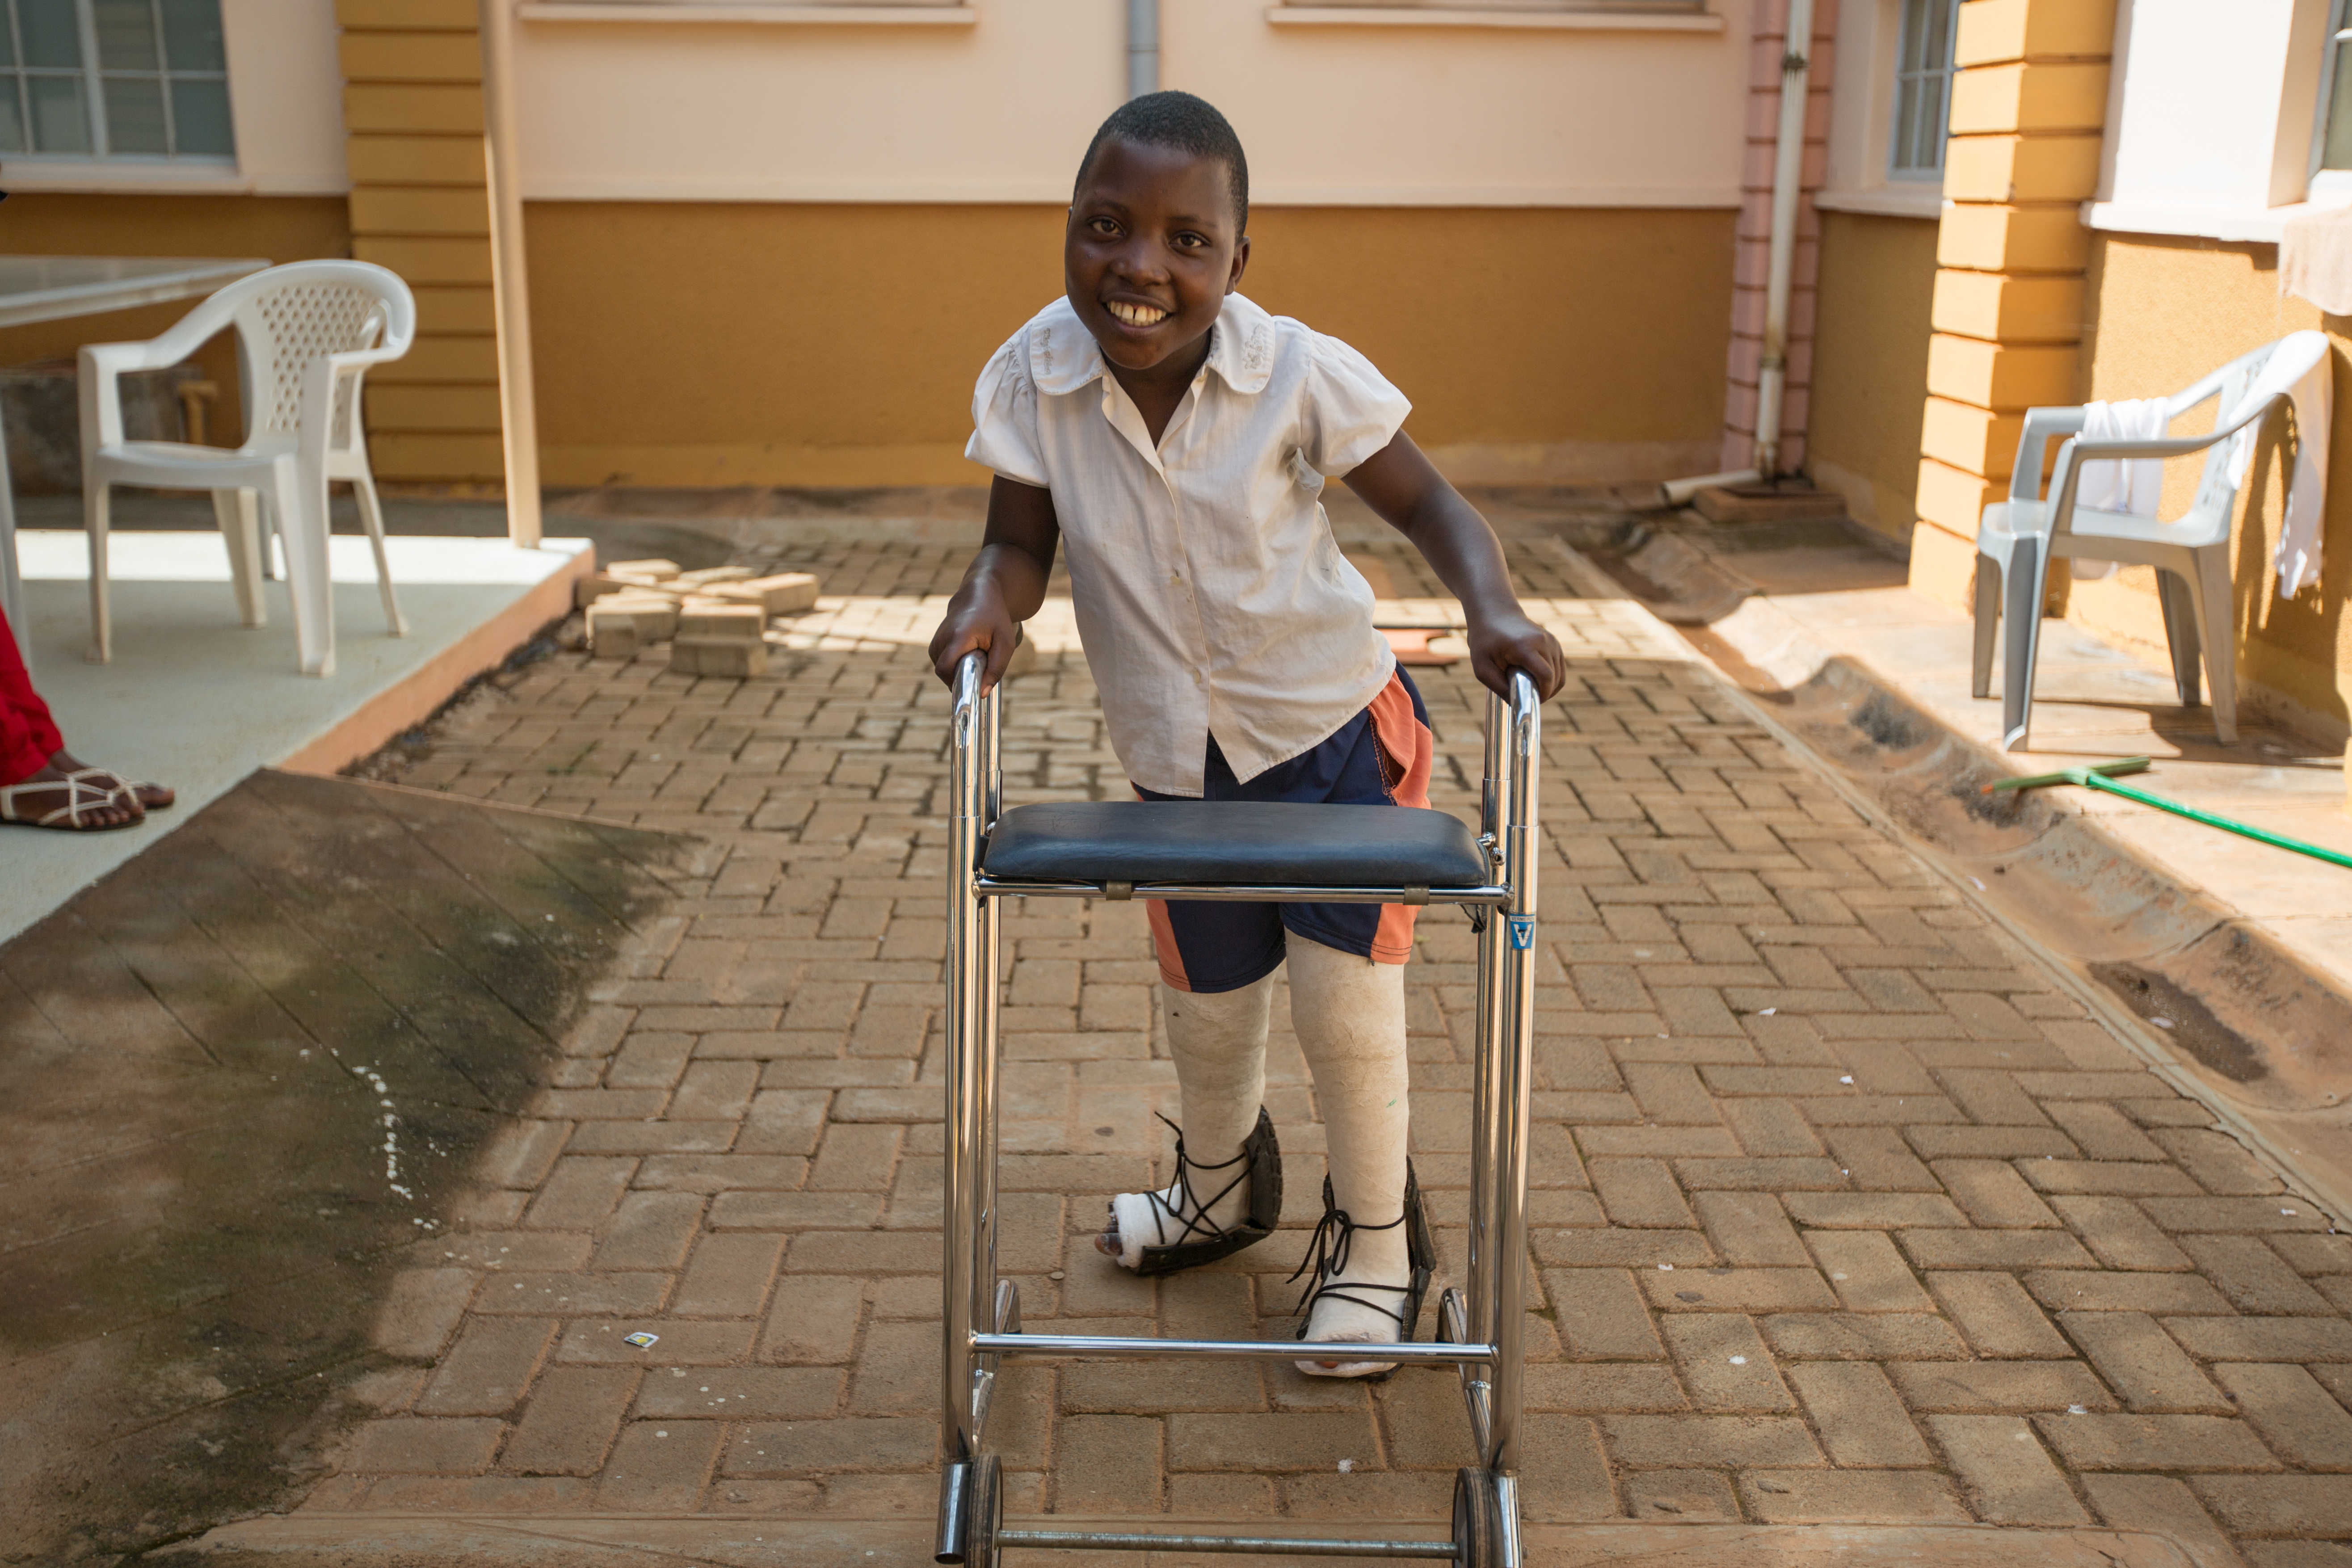 A girl with casts on her legs is using a walking frame. She is smiling as she walks towards the camera